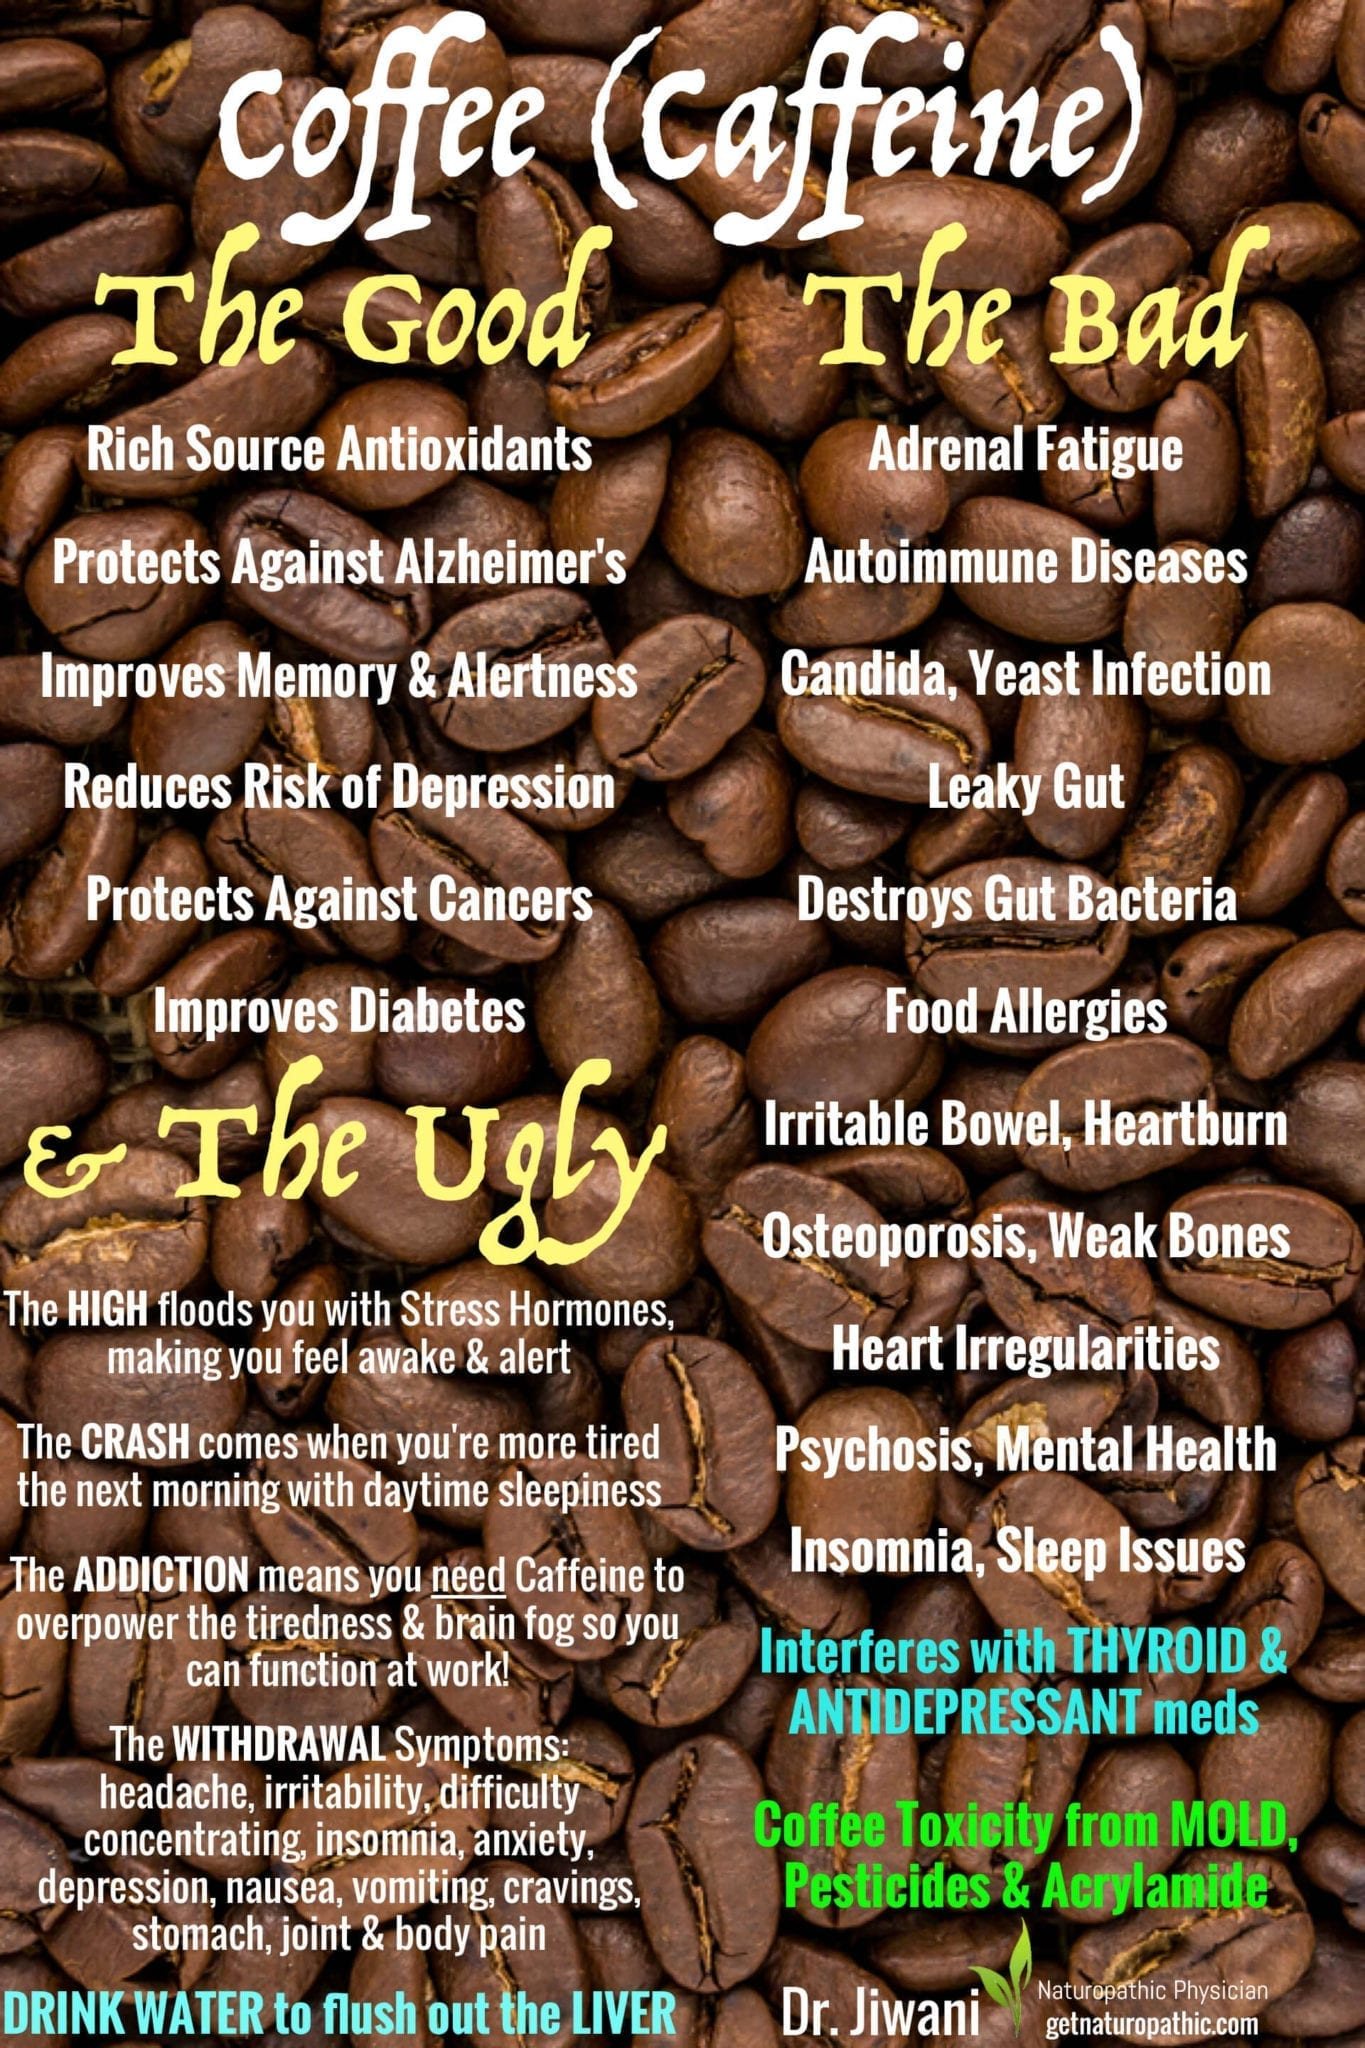 Confused about Coffee? The Good, Bad & Ugly about Caffeine & this BitterSweet Beverage | Dr. Jiwani's Naturopathic Nuggets Blog